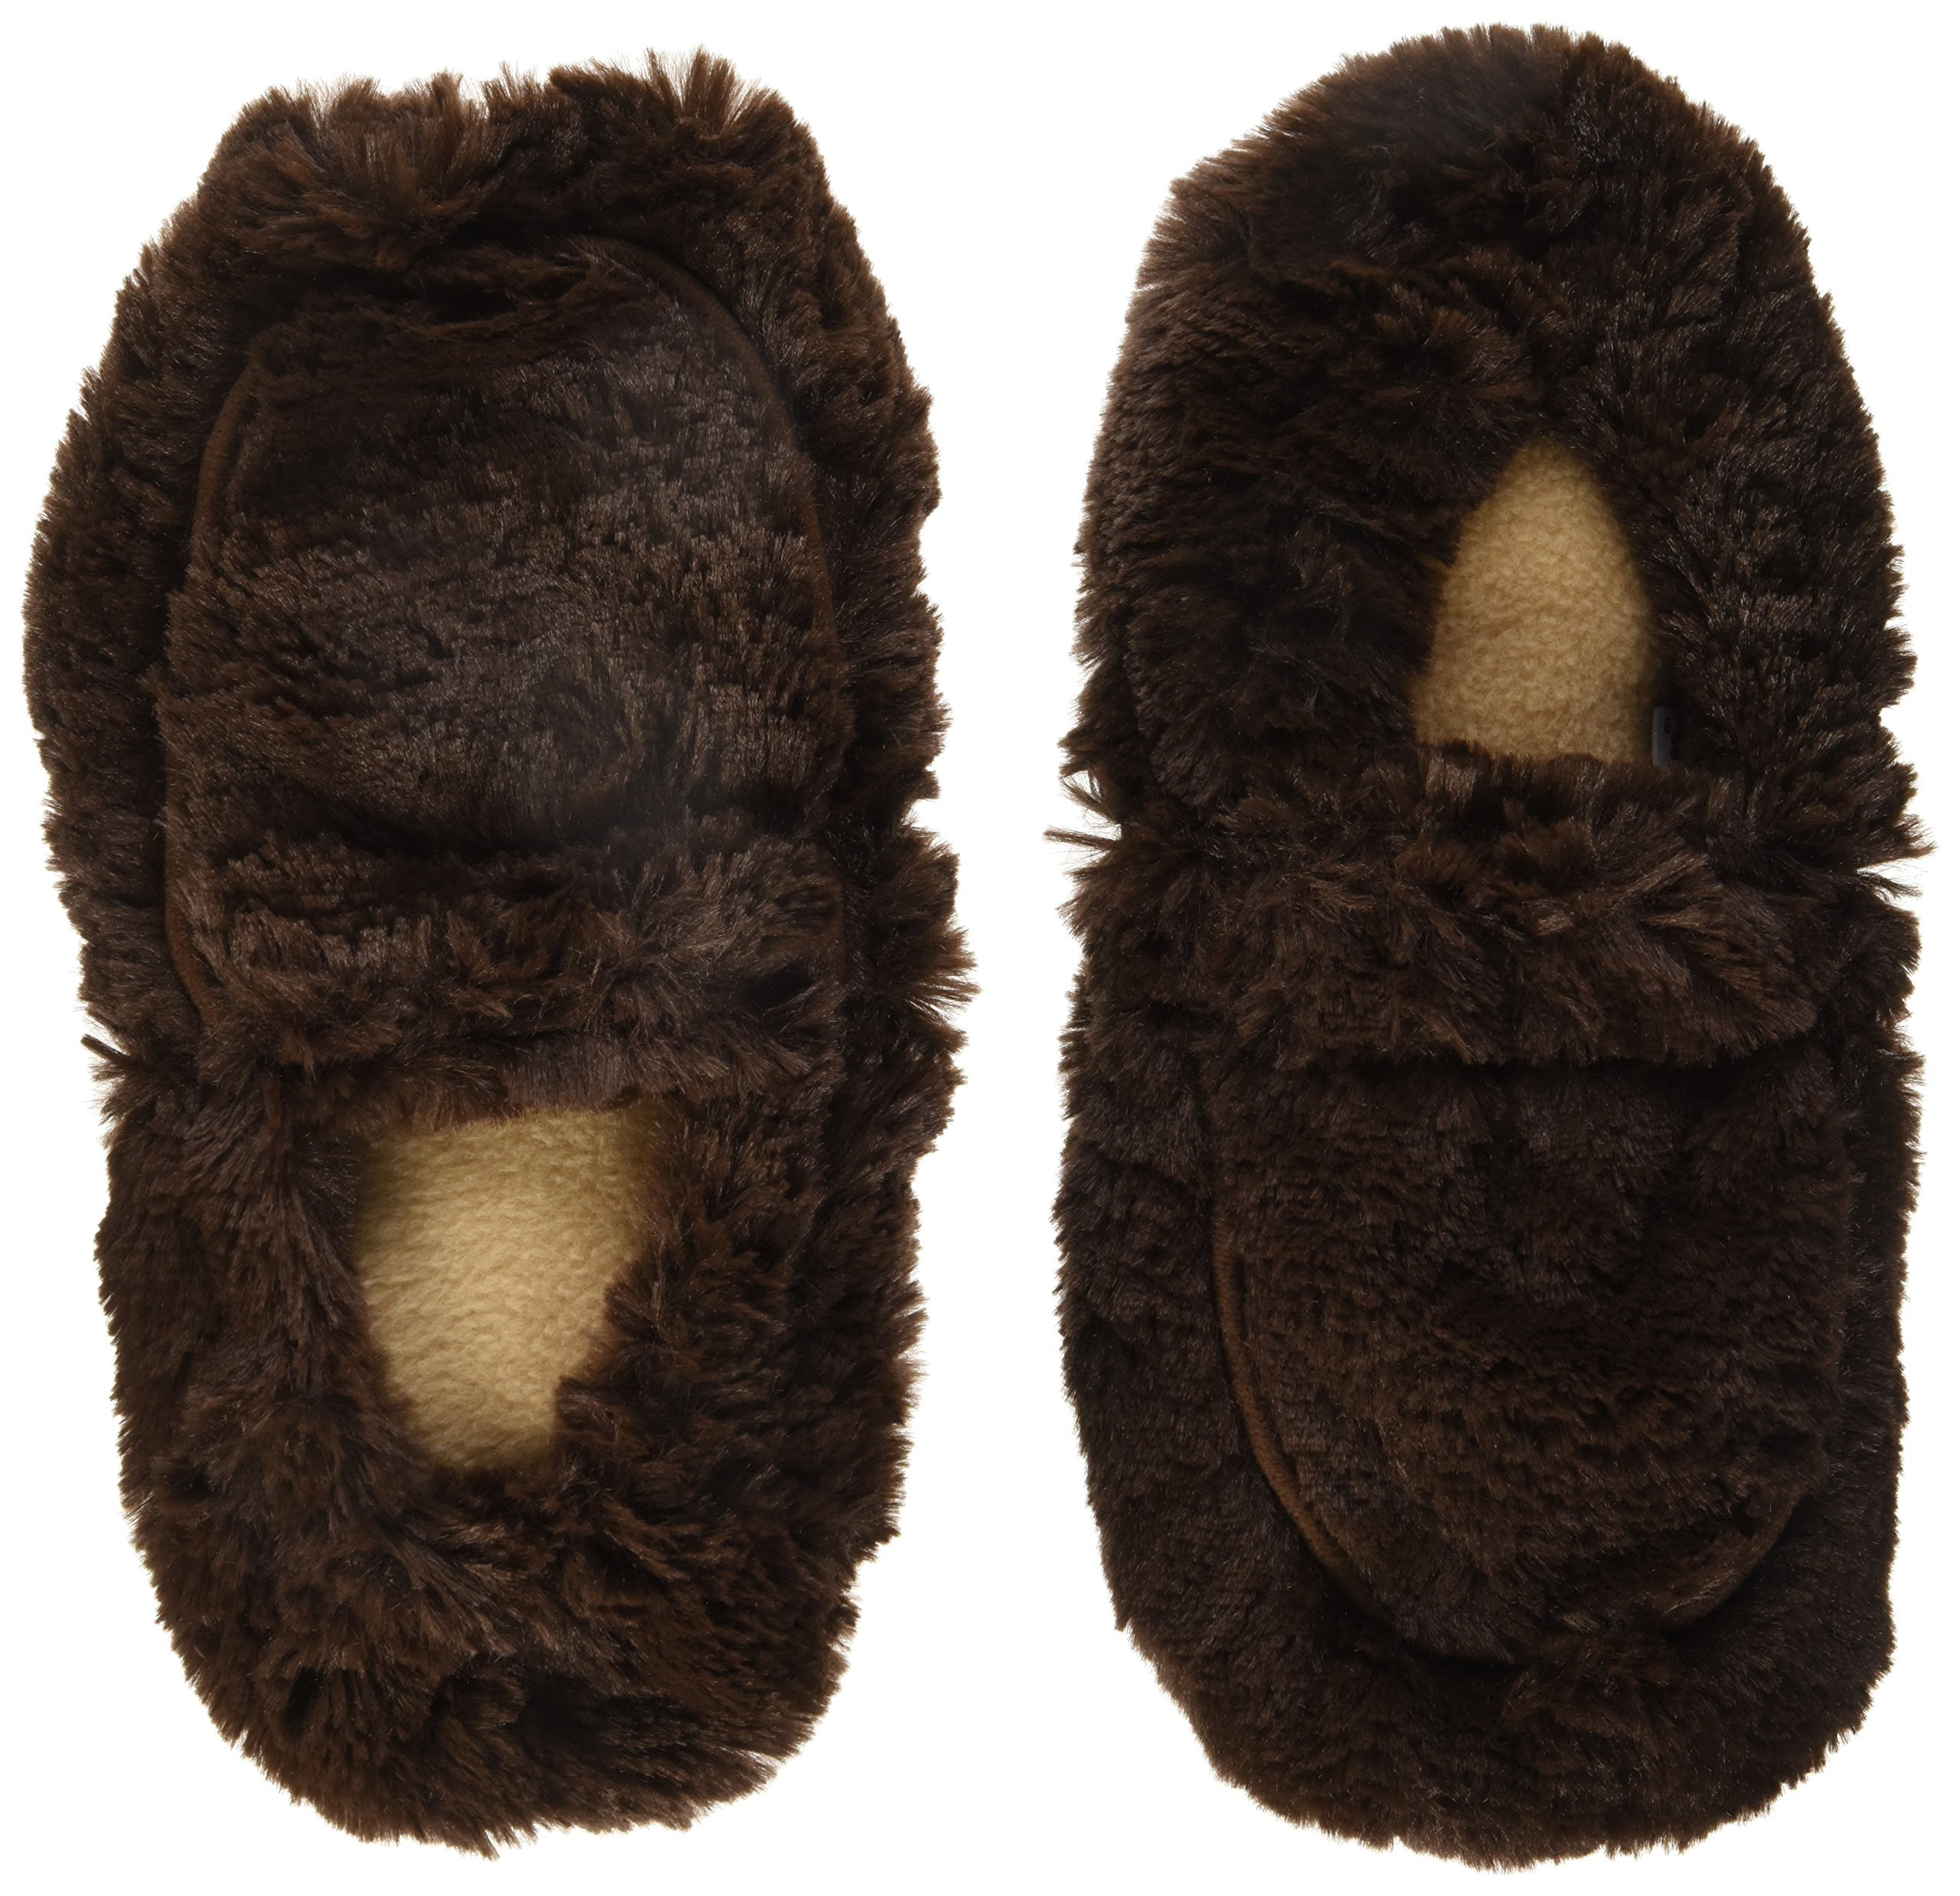 4afe5955f03 Amazon.com  Intelex Fully Microwavable Luxury Cozy Slippers Snowy ...